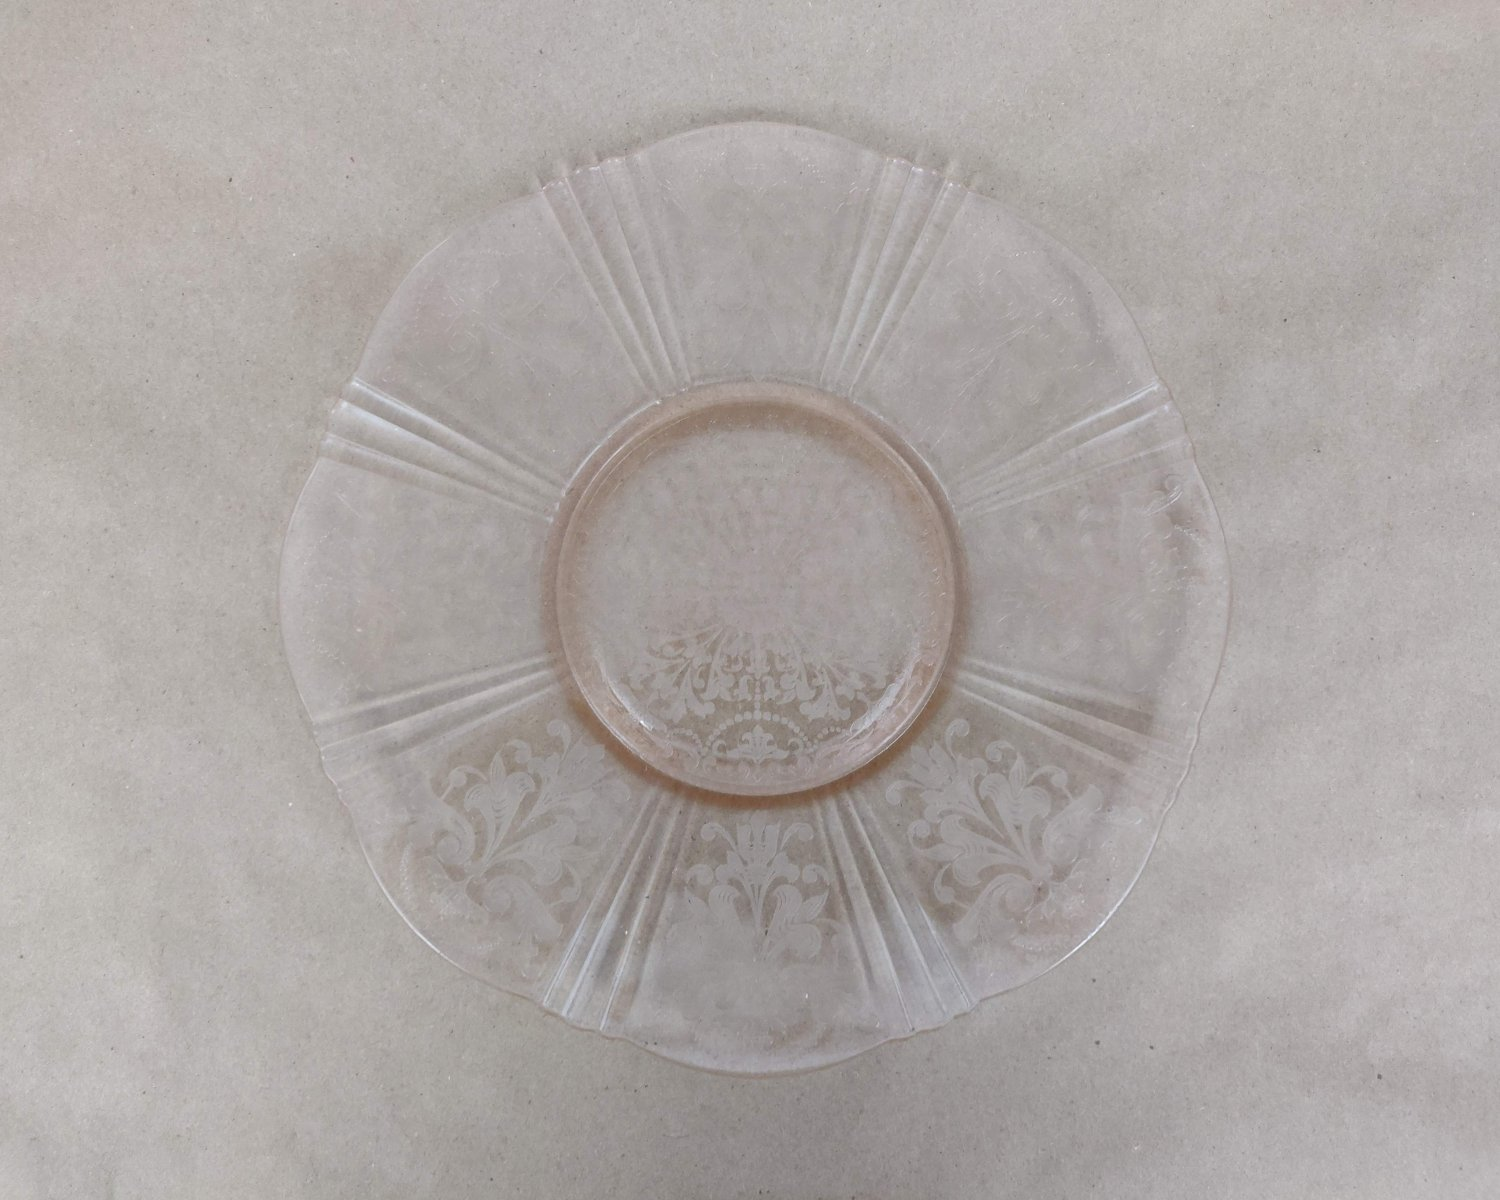 Pink Depression Glass, American Sweetheart Salver Plate, Cake Plate